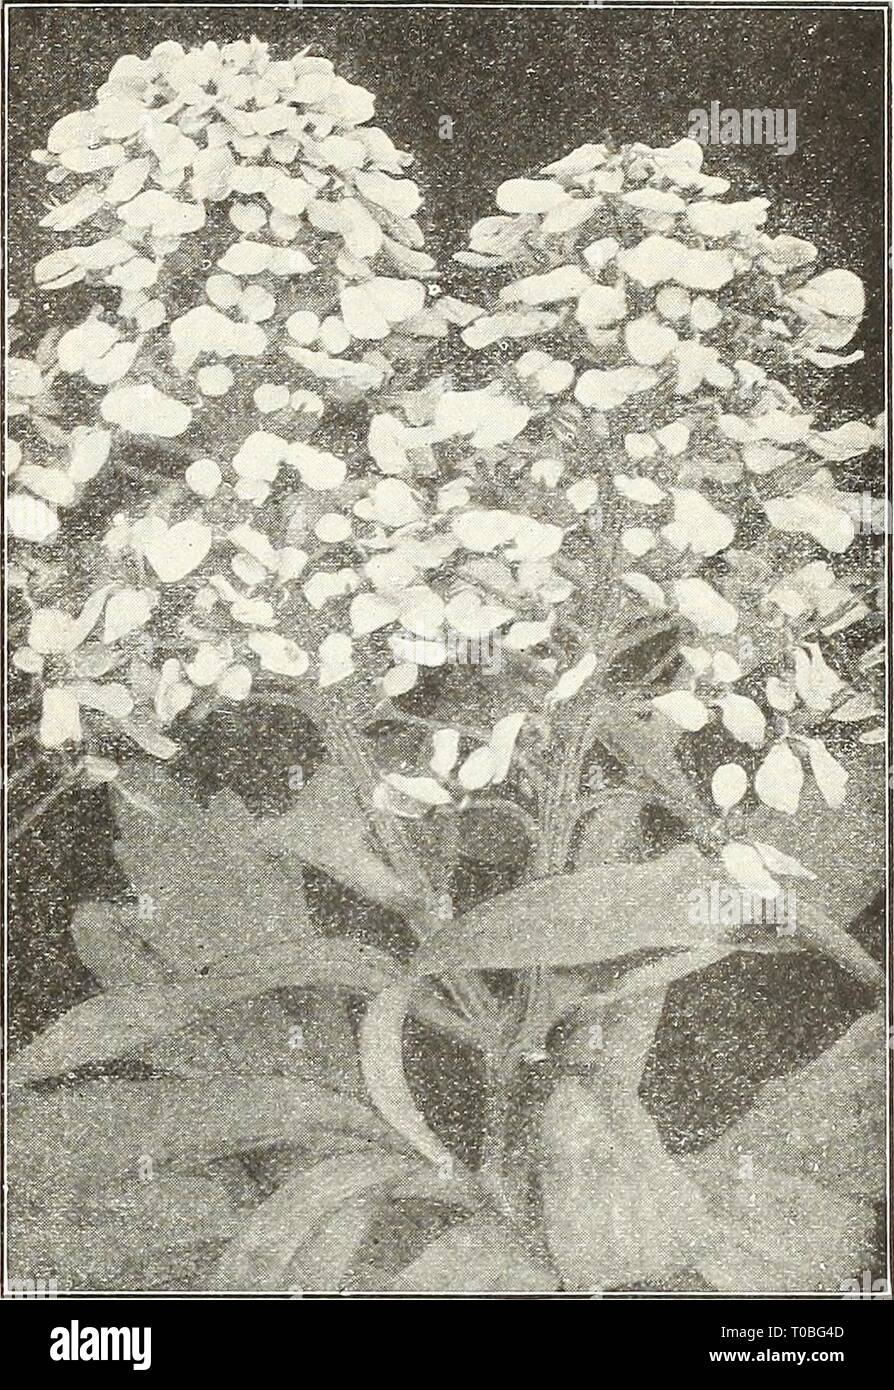 Dreer's garden book 1923 (1923) Dreer's garden book 1923 dreersgardenbook1923henr Year: 1923  H^^^^^^^^^^HI 75 CANARY-BIRD VINE (Tropaeclum Canariense) PER PKT. 1749 A beautiful rapid growing annual climber, the charm- ing little canary-yellow blossoms l:)earing a fancied resemblance to a bird with its wings half expanded. The sprays of flowers are very artistic and keep when cuW in good condition for a week. (See cut.) Per oz., 40 cts $0 05 CANDYTUFT (IberisUmbellata) The annual Candytufts are universally known and cultivated, and considered indispensable for cutting. All the varieties look b - Stock Image